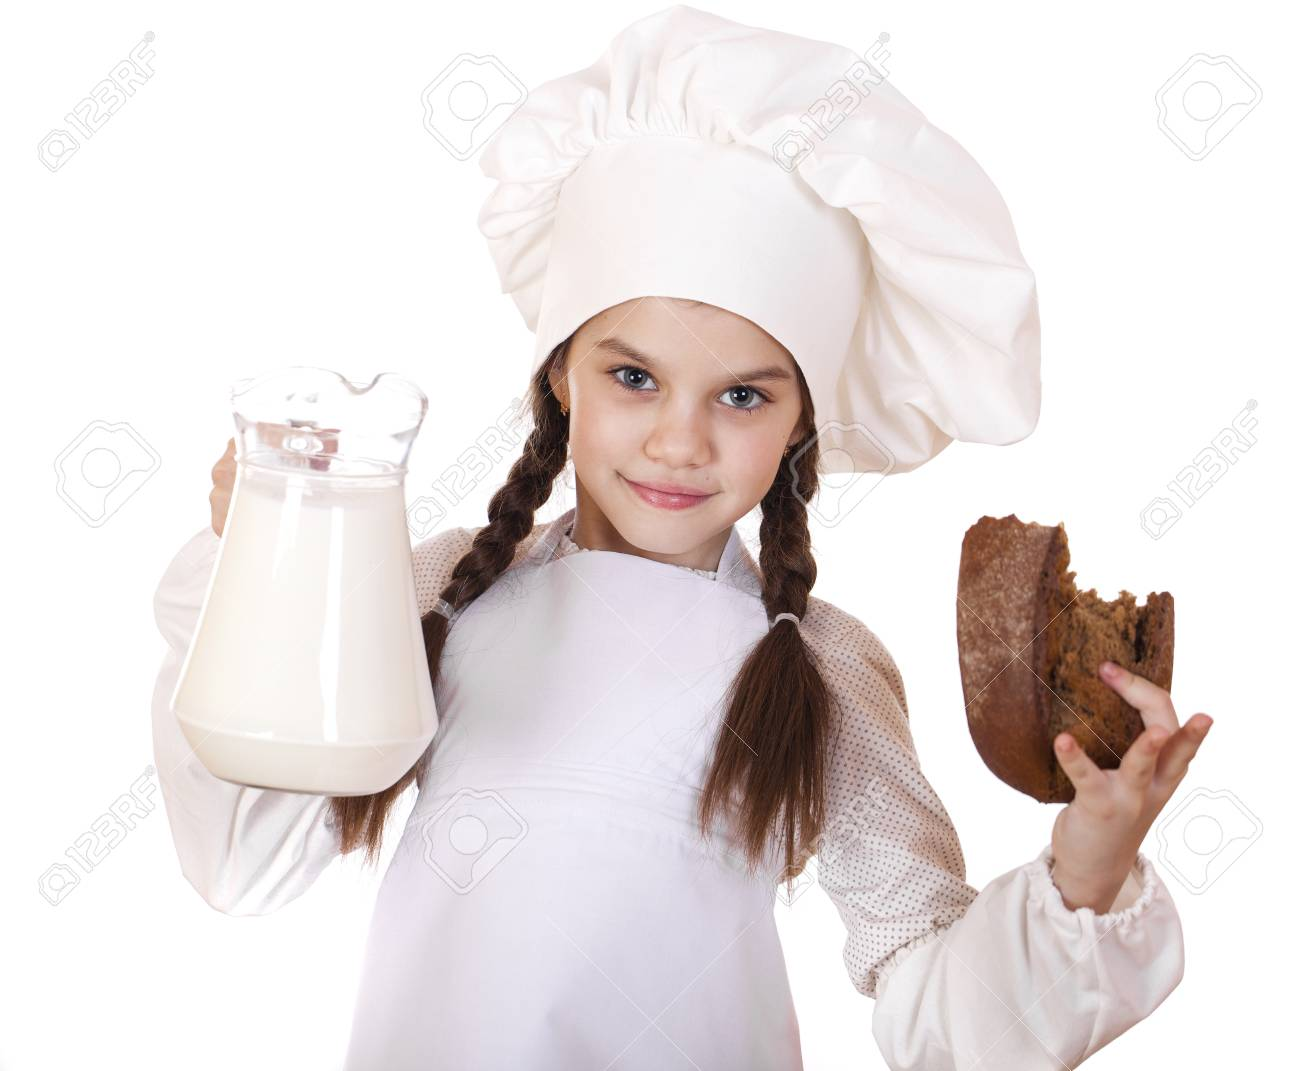 Cooking and people concept little girl in a white apron holding a jug of milk